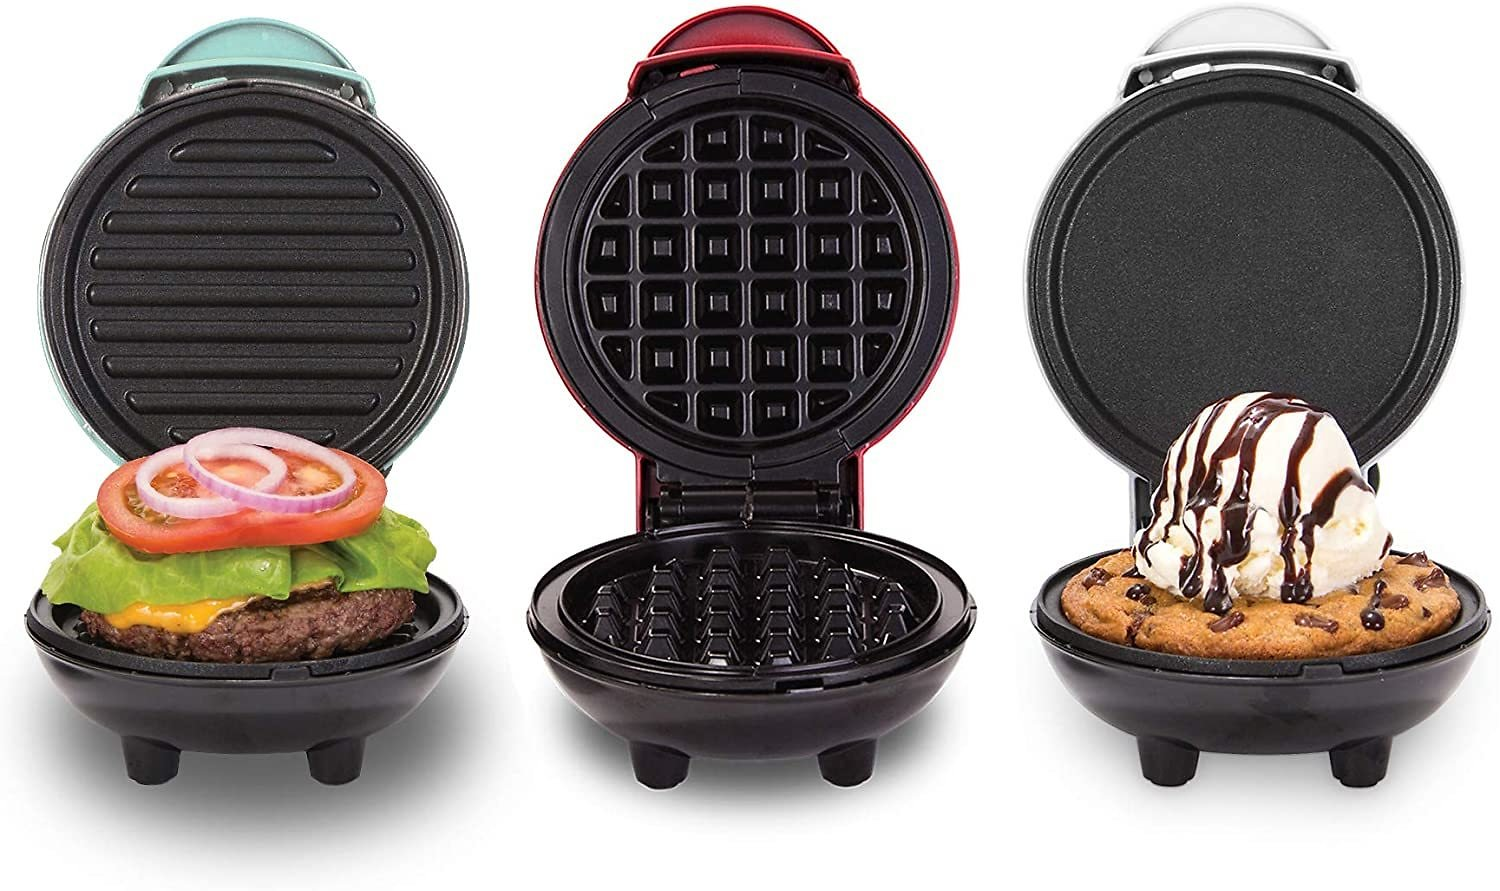 Dash Mini Maker Grill, Griddle + Waffle Iron, 3 Pack, Red/Aqua/White